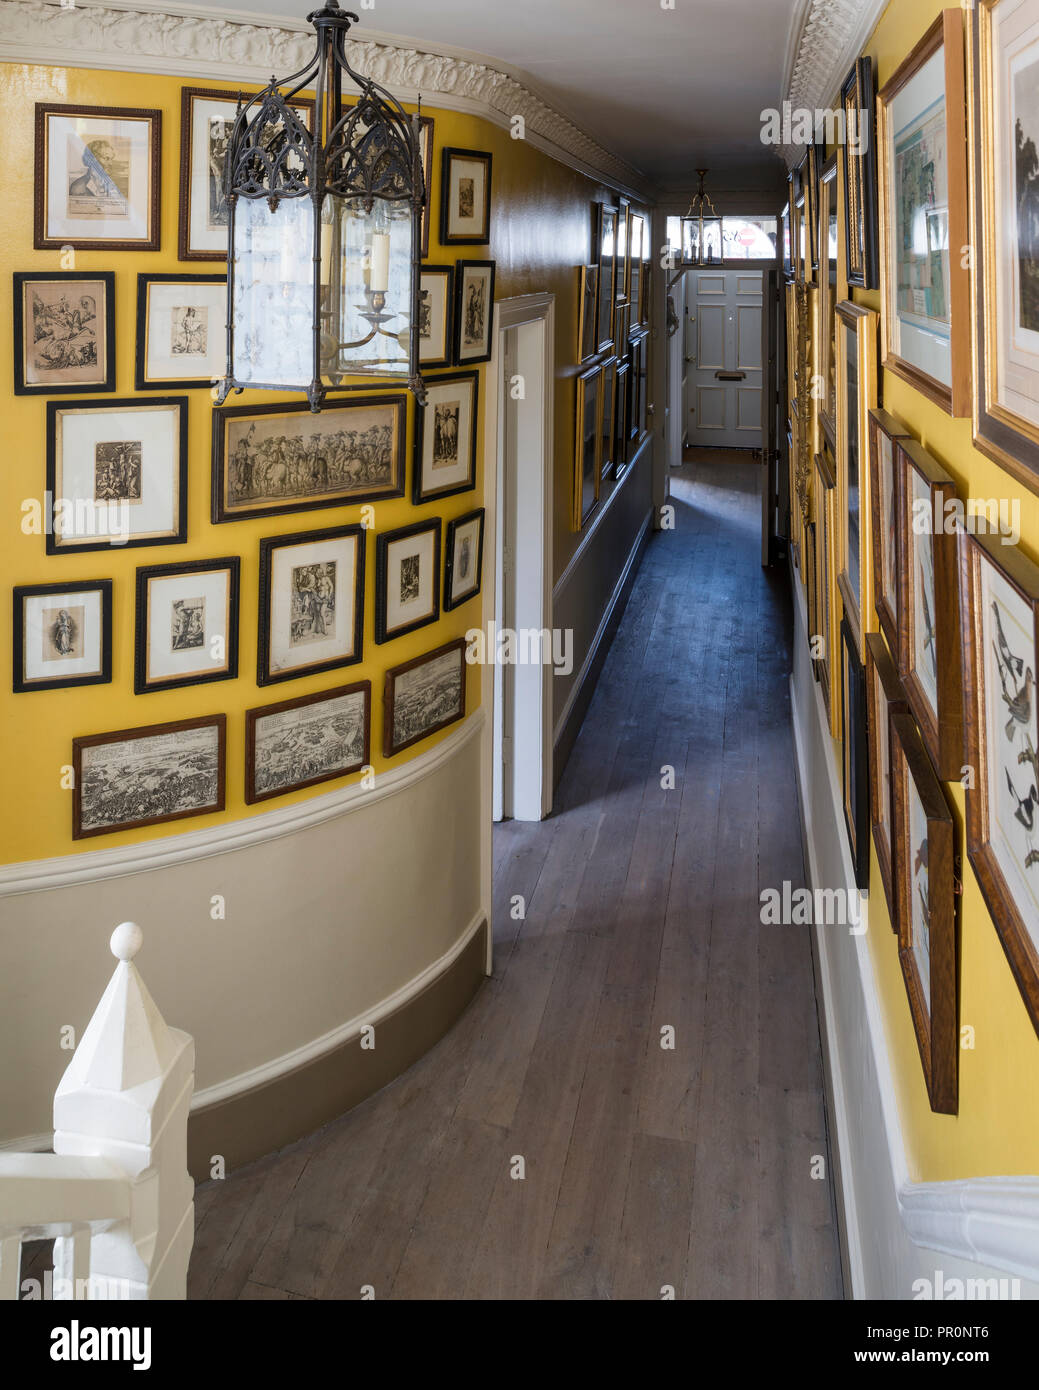 Curved picture wall in entrance hallway with vintage glass lantern - Stock Image